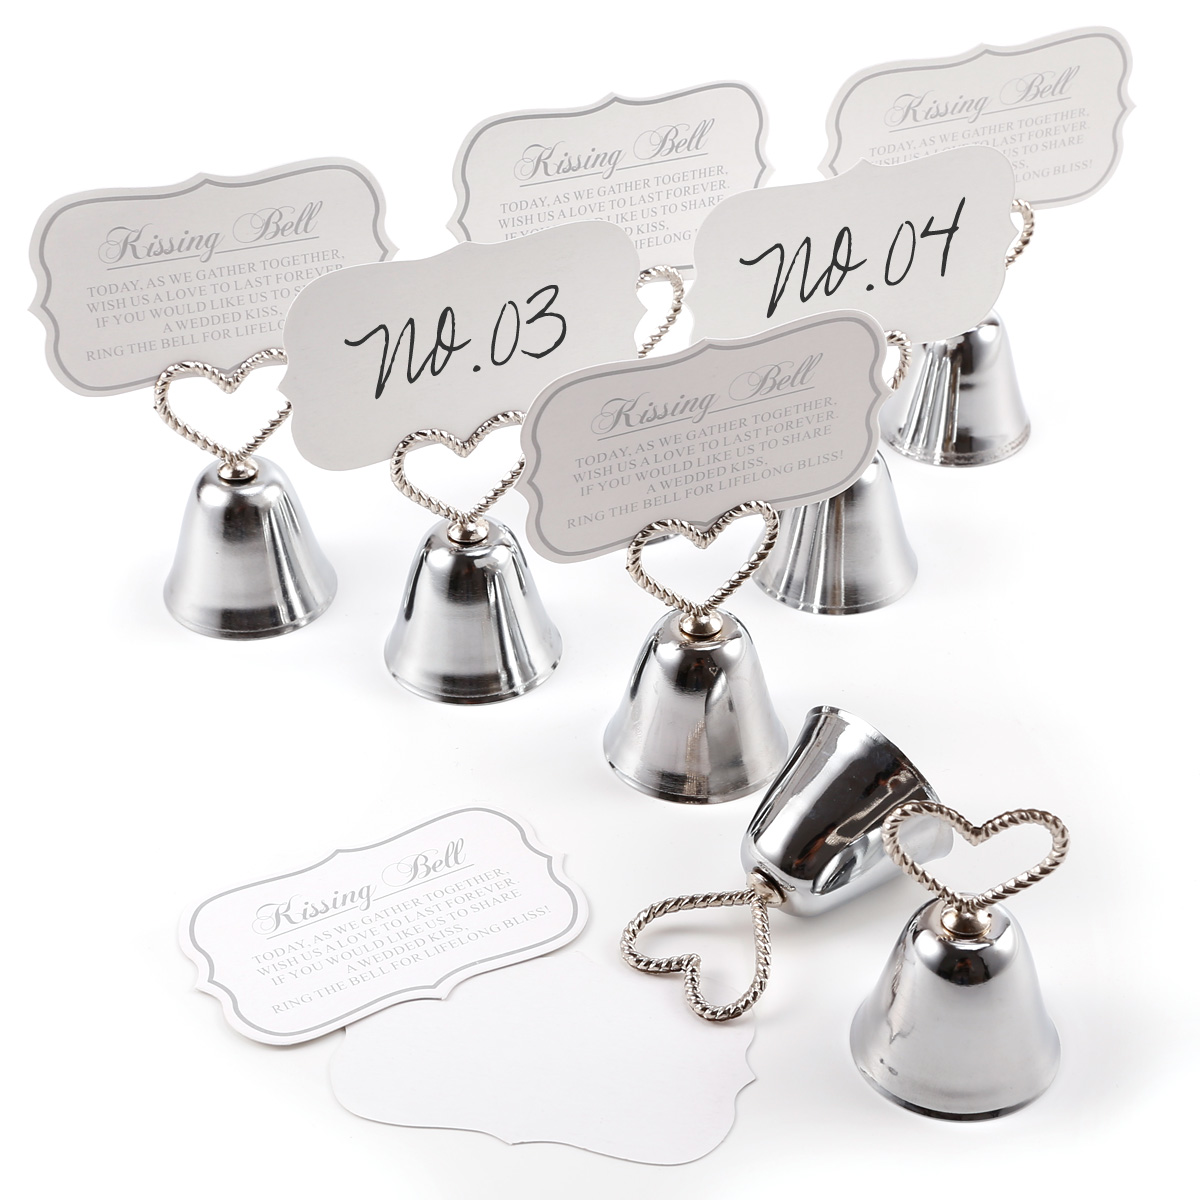 Kissing Bell Silver Place Card Holders Photo Holders Set Of 8 Wedding Favors